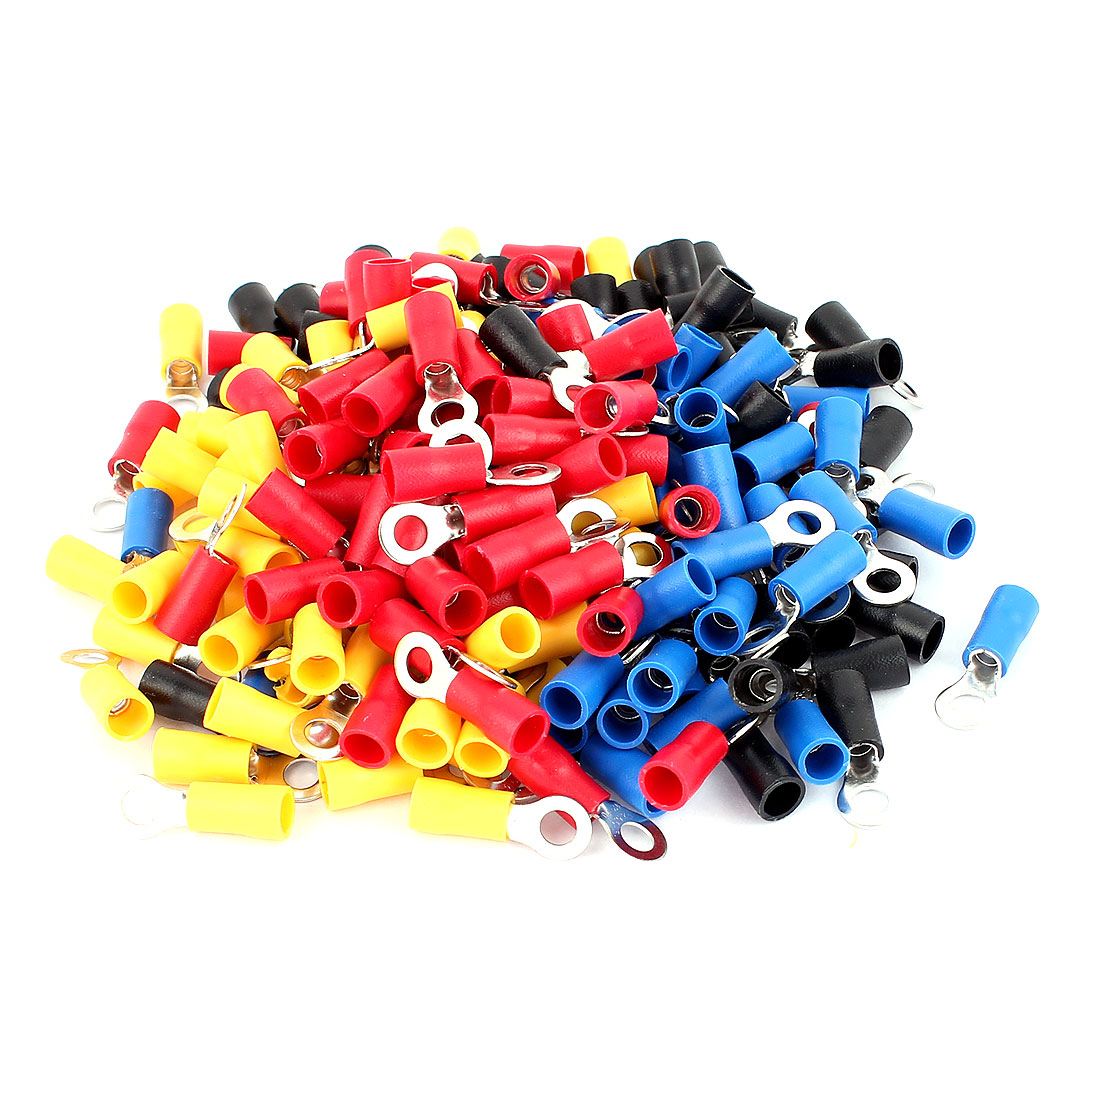 200pcs RV5.5-5 Red Blue Yellow Black Plastic Sleeve Pre Insulated Ring Terminals Connector